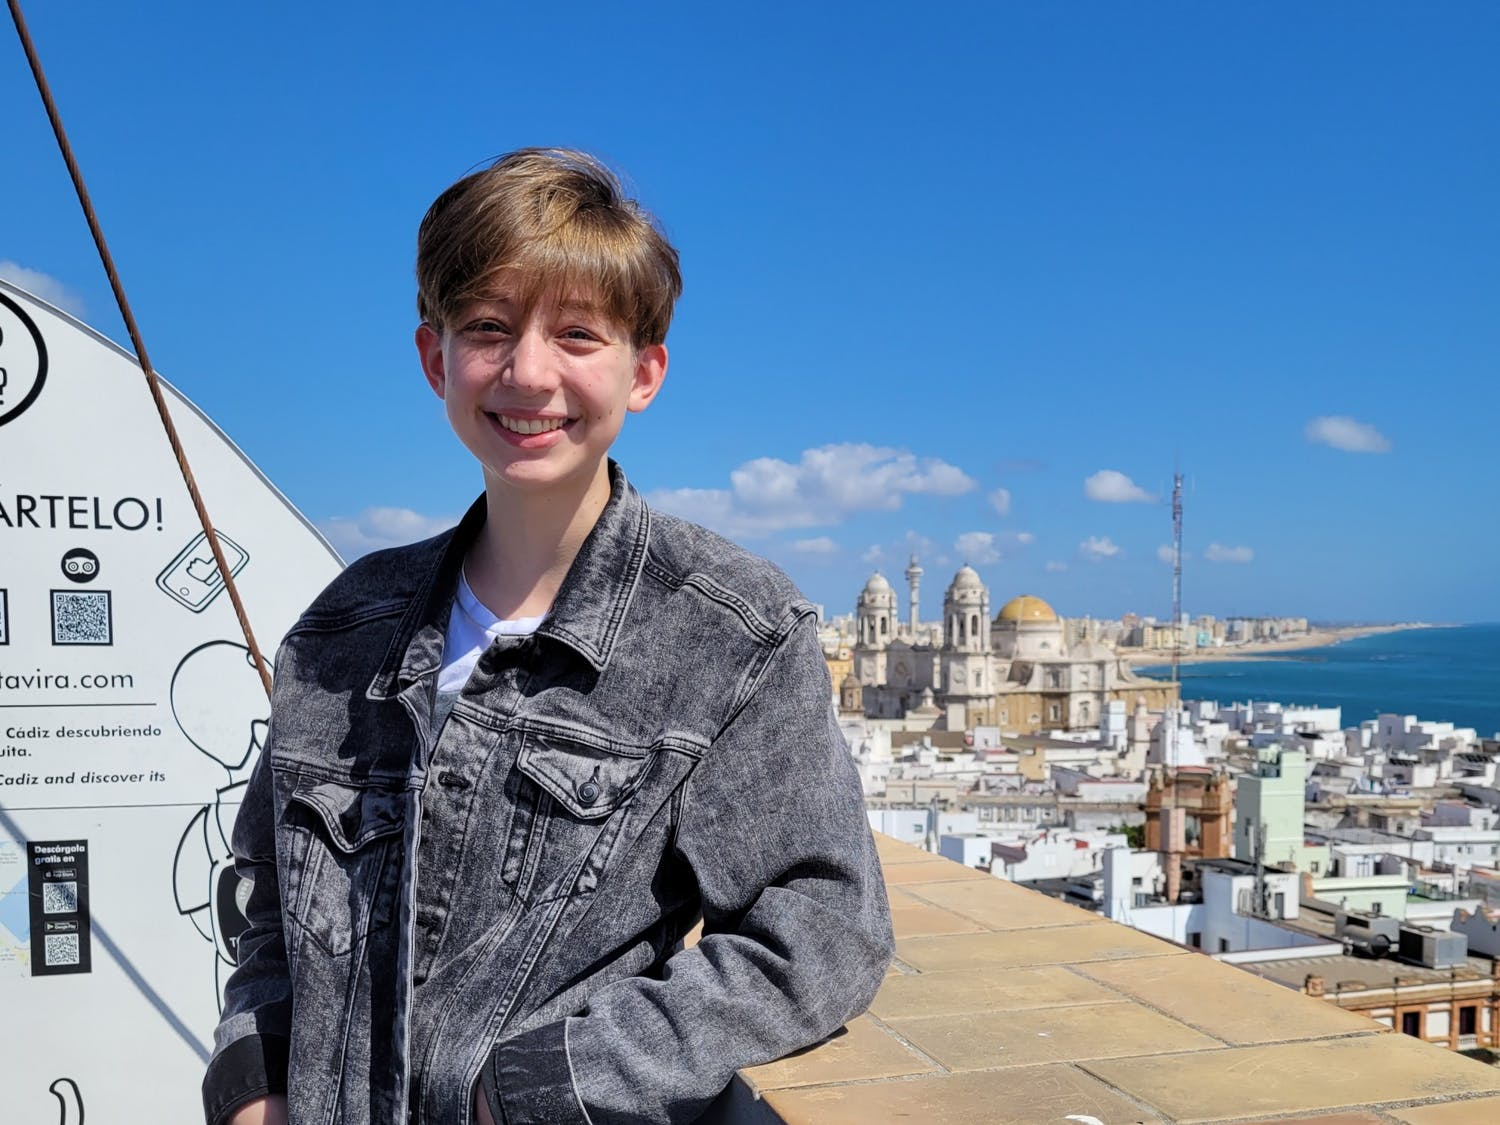 The Daily Gamecock's new editor-in-chief poses for a photo on the rooftop of Torre Tavira in Cádiz, Spain.